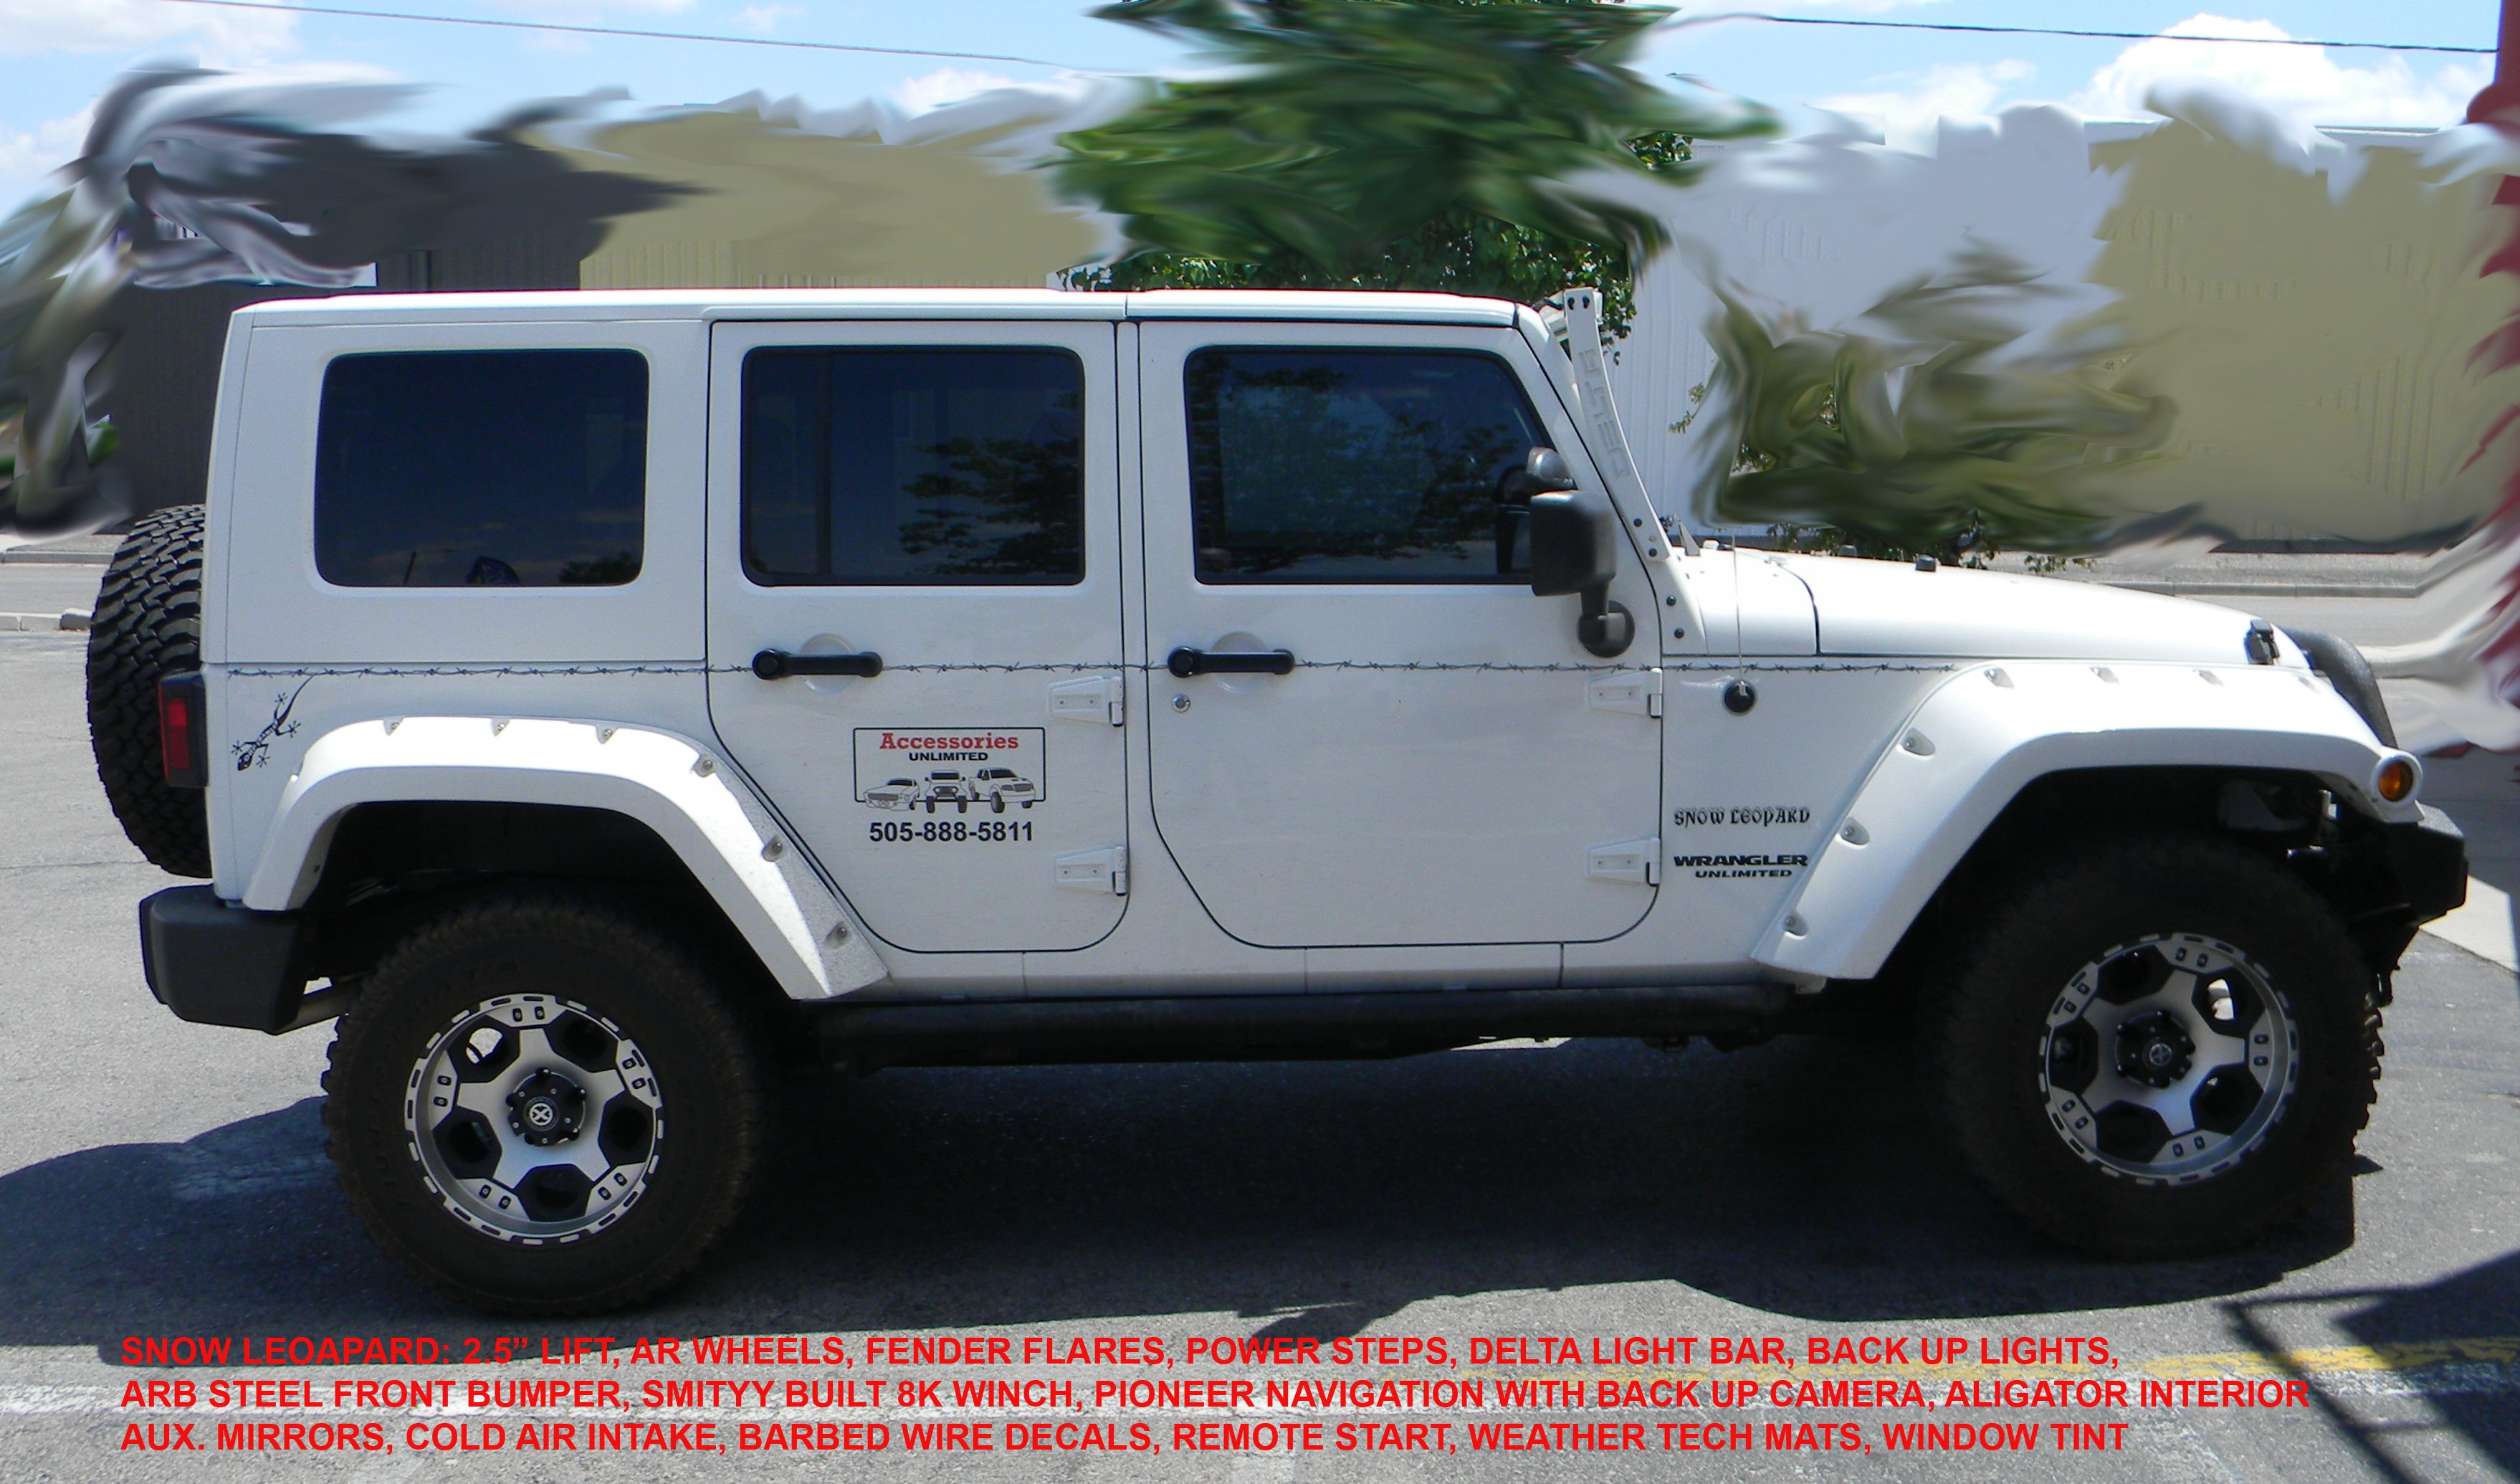 prices image finance albuquerque sale fe htm ram incentives vlp at santa dodge jeep cc of lease new fiat offers lithia on chrysler nm